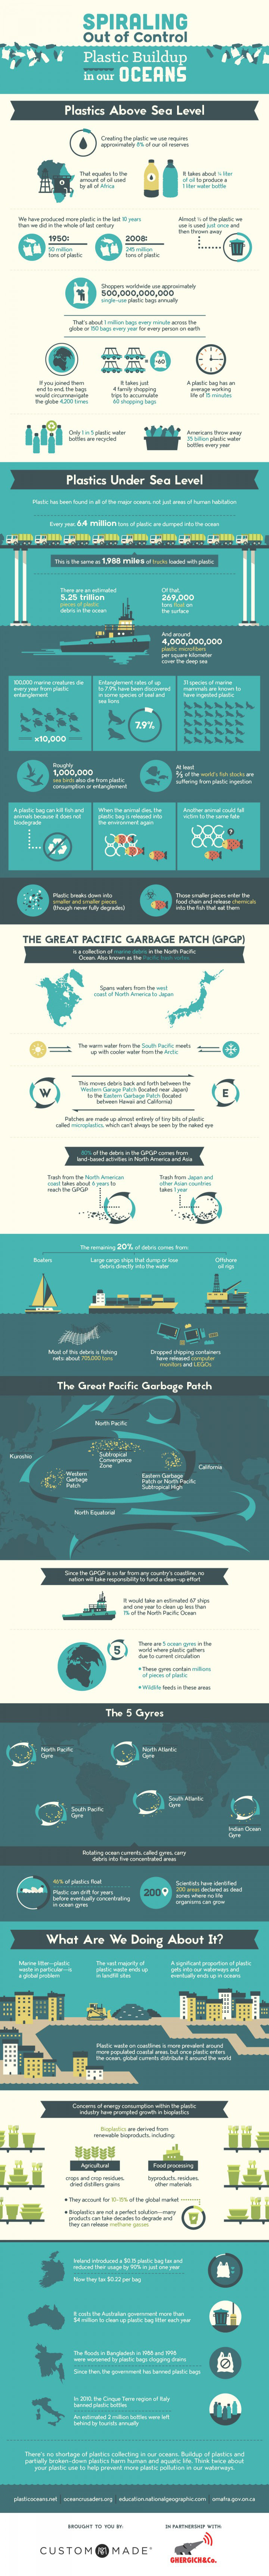 Infographic-plastic-build-up-ocean-2.jpg